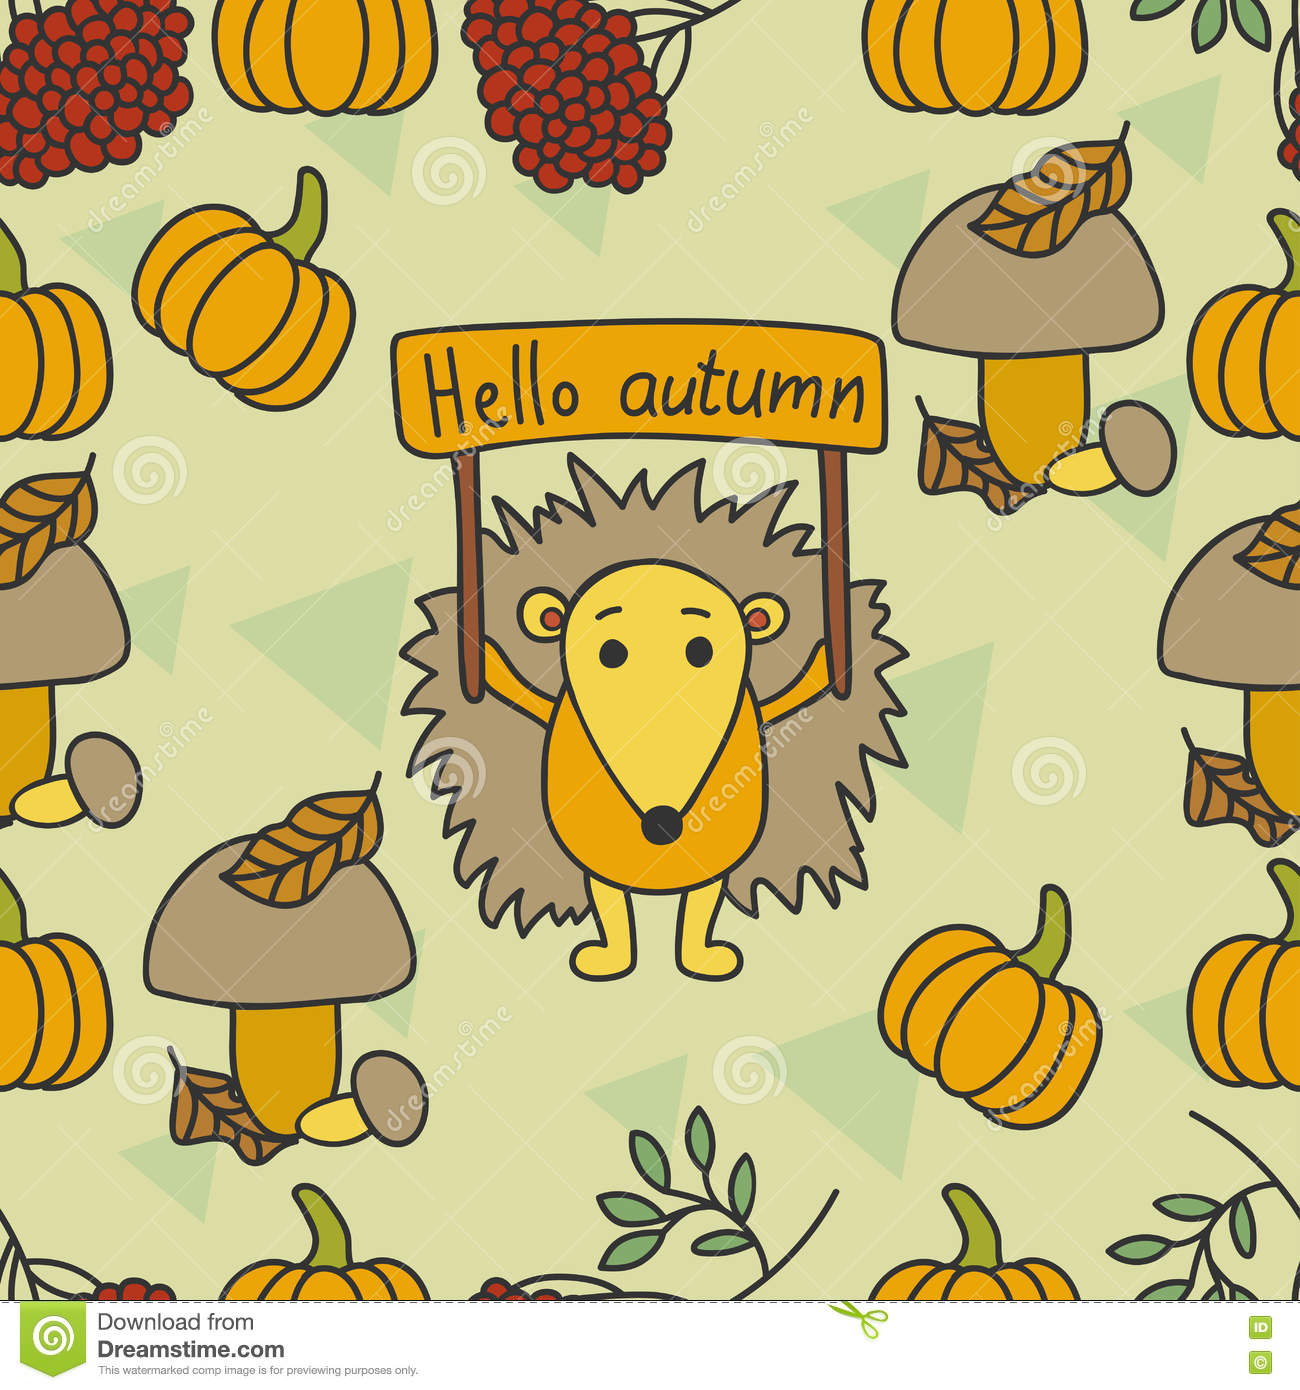 Autumn Pattern With Hedgehog, Leaves, Pumpkin, Kalina, Mushrooms.